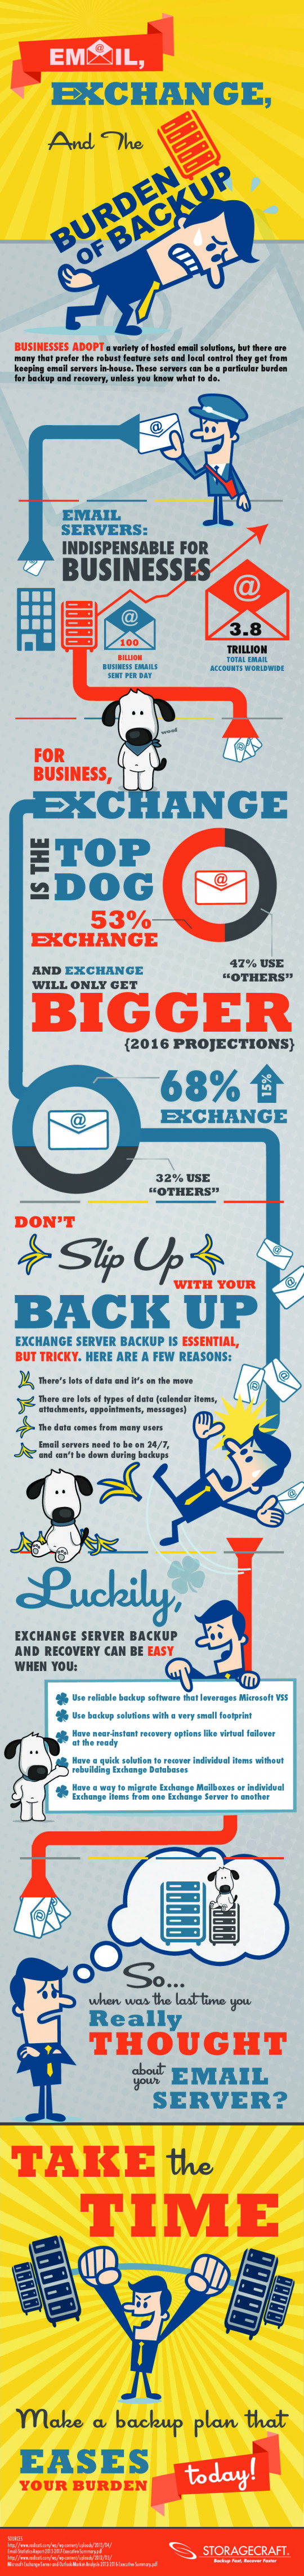 Email, Exchange, and the Burden of Backup